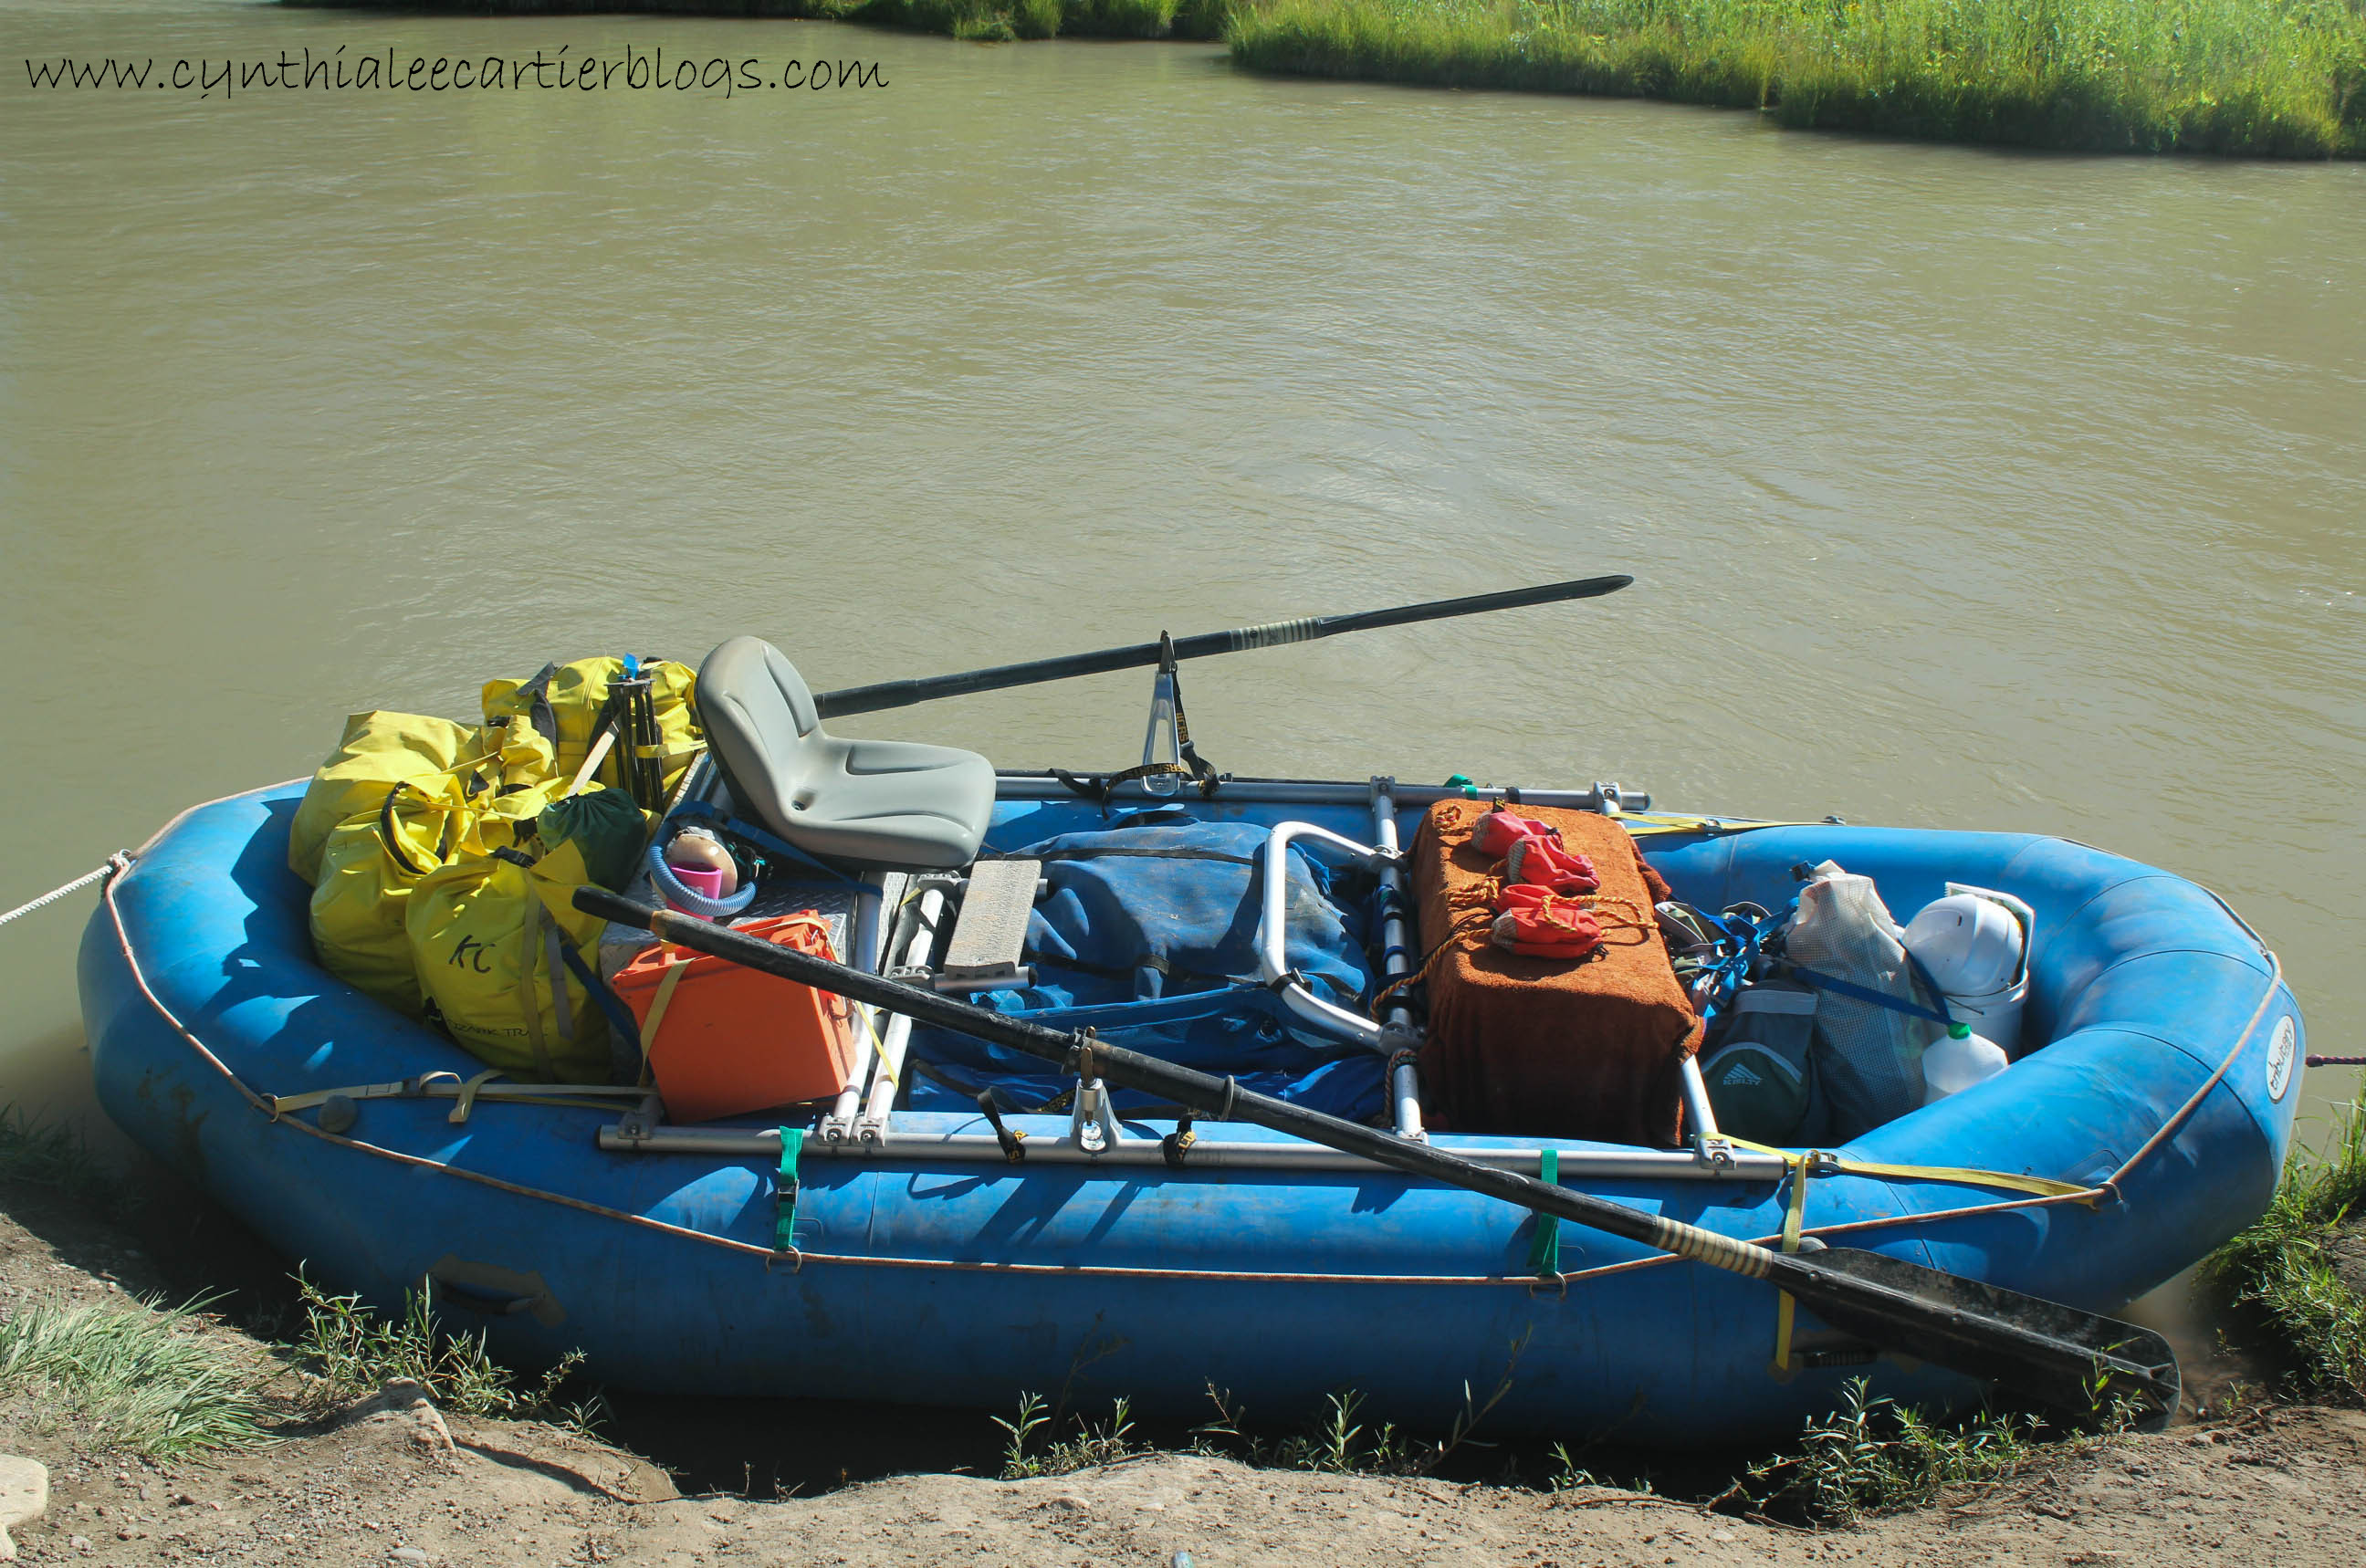 River raft ready for the Rio Chama.